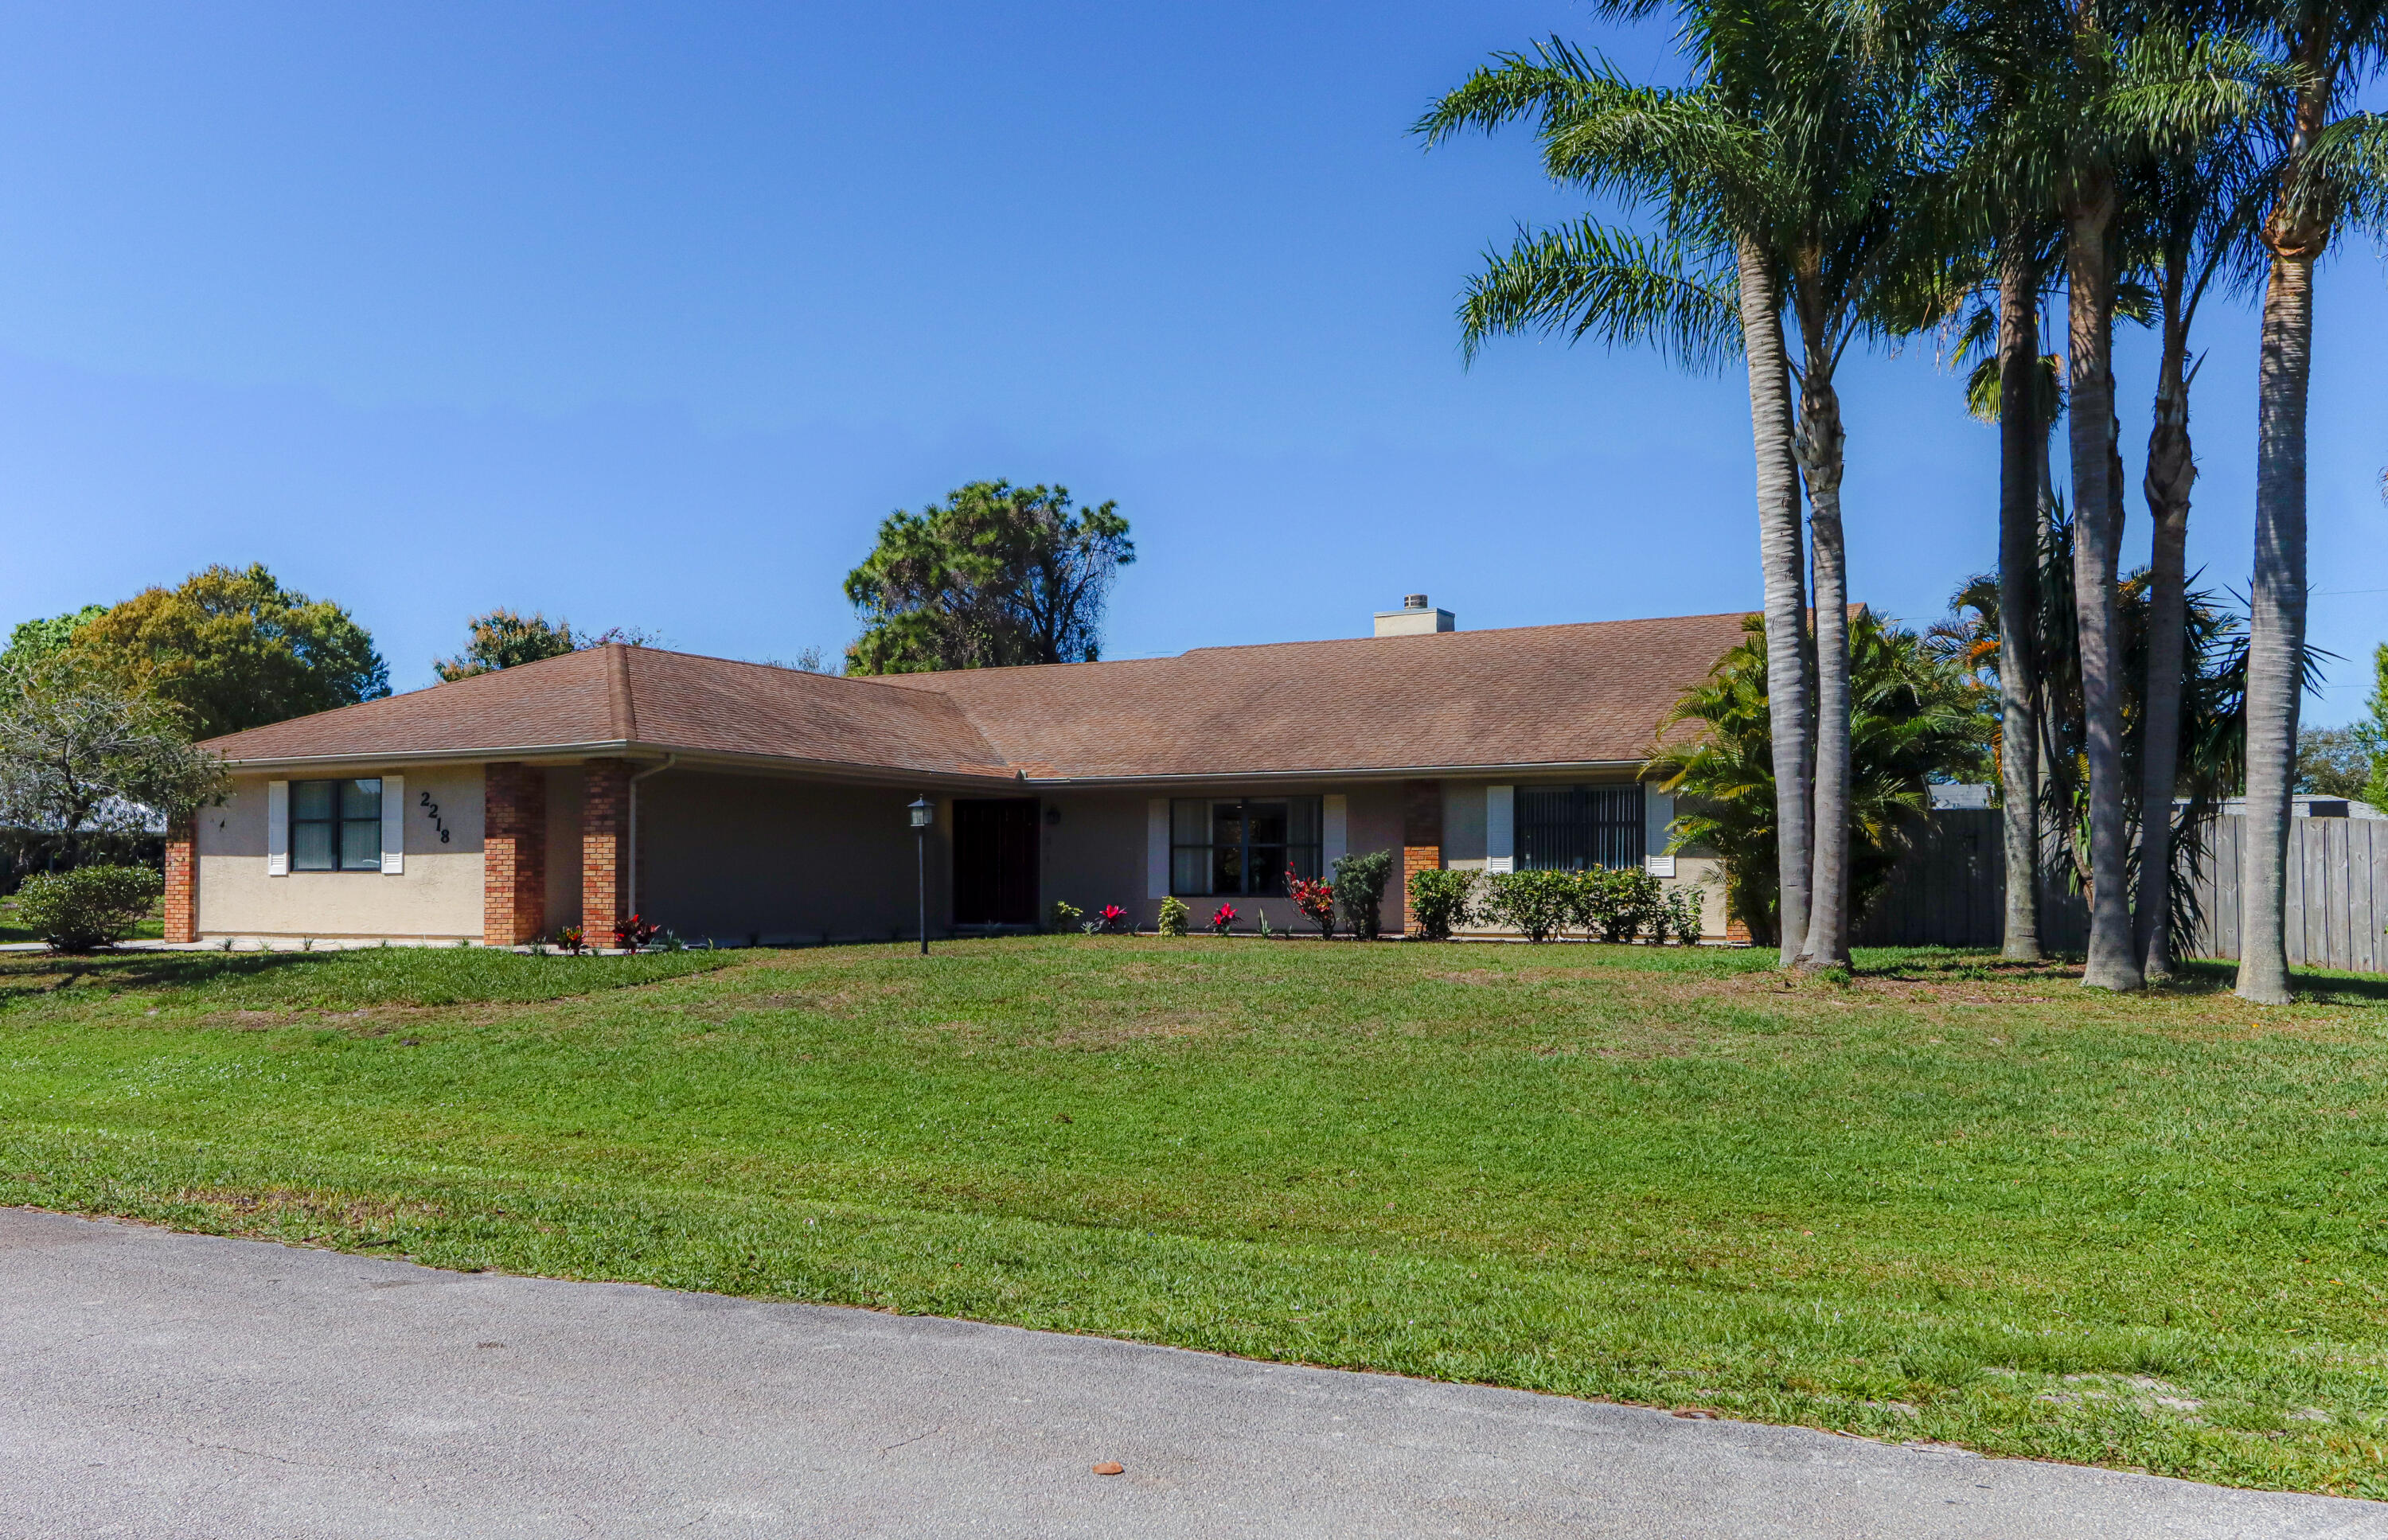 2218 Abcor Road, Port Saint Lucie, Florida 34952, 3 Bedrooms Bedrooms, ,2 BathroomsBathrooms,Residential,For Sale,Abcor,RX-10694133